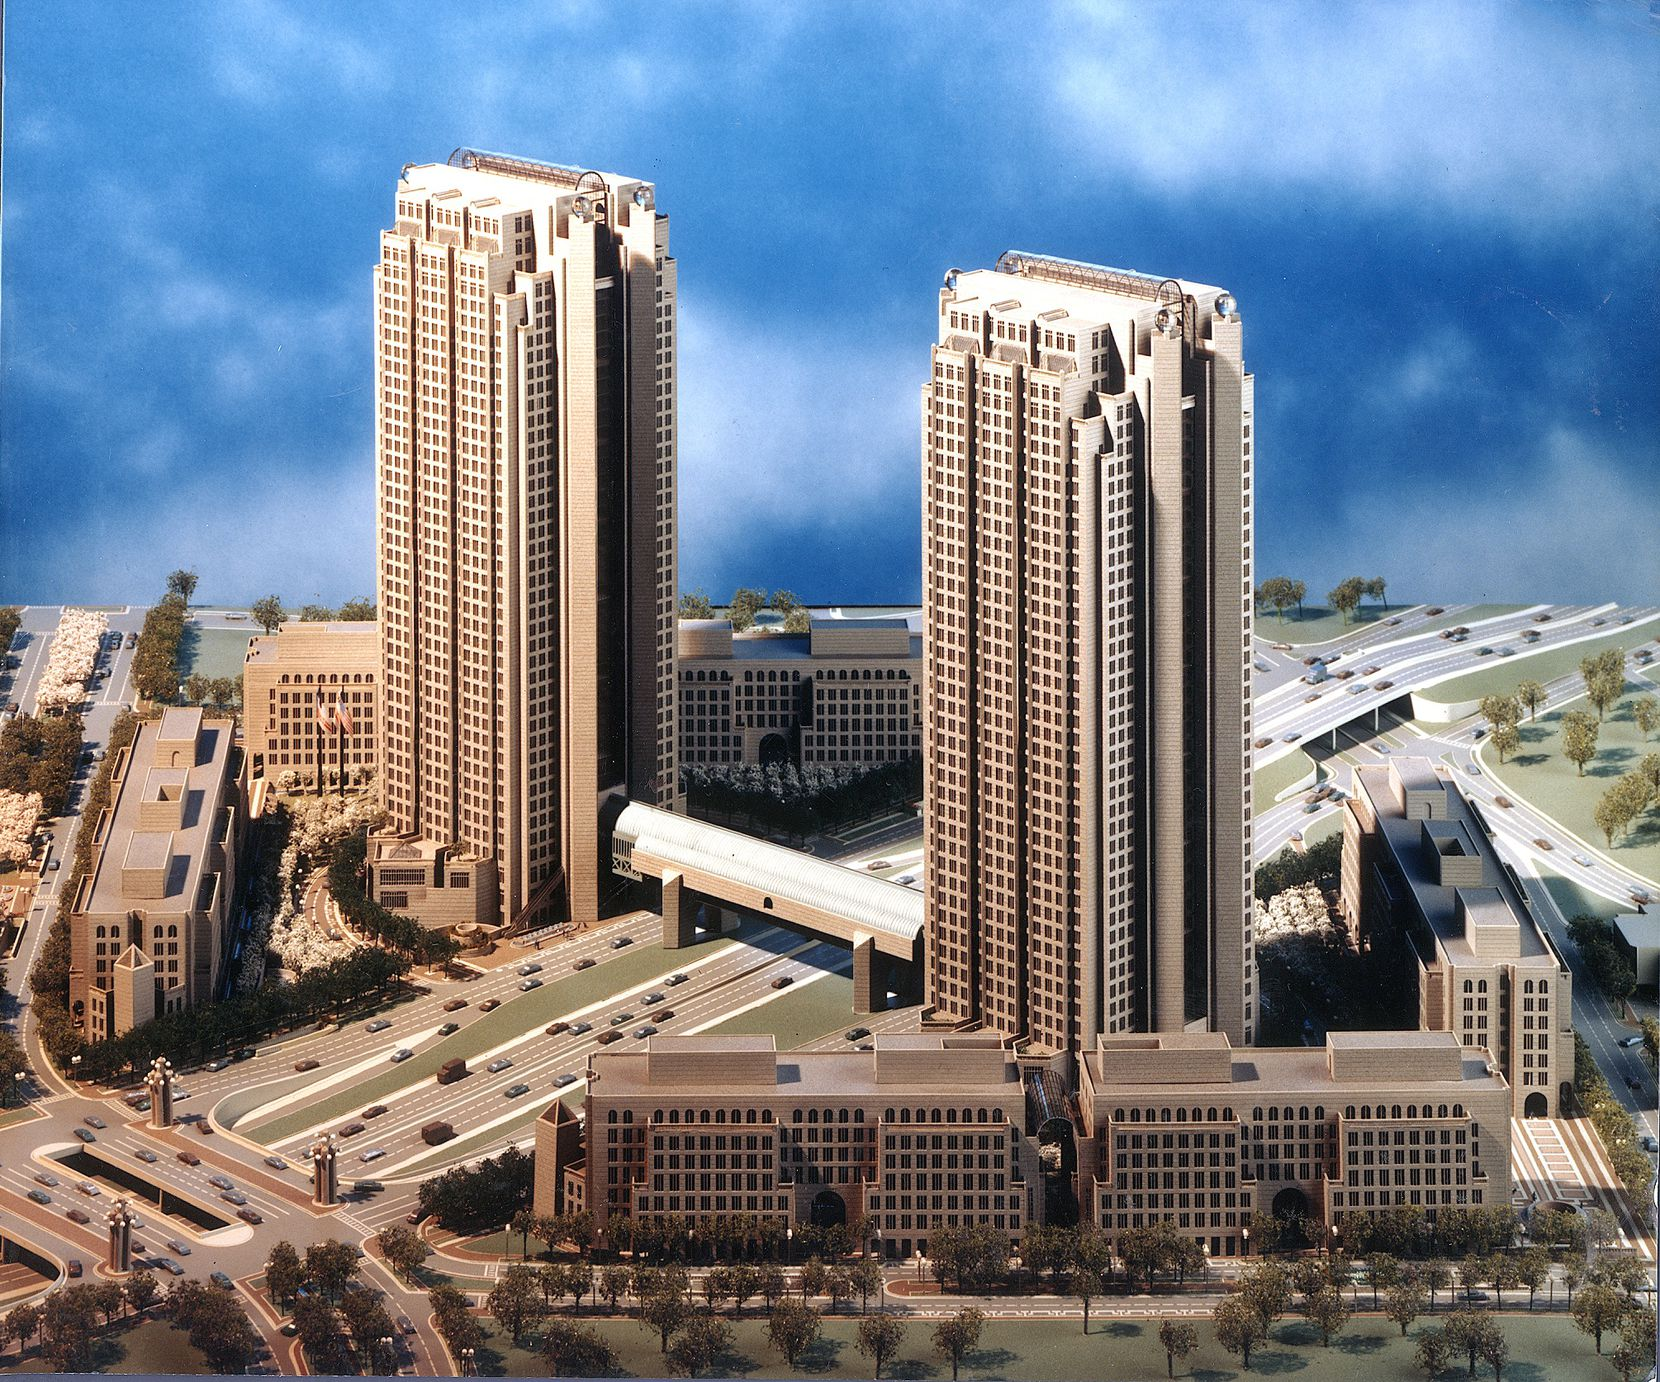 The original artist's model of Cityplace showed two 42-story towers. only one was built.